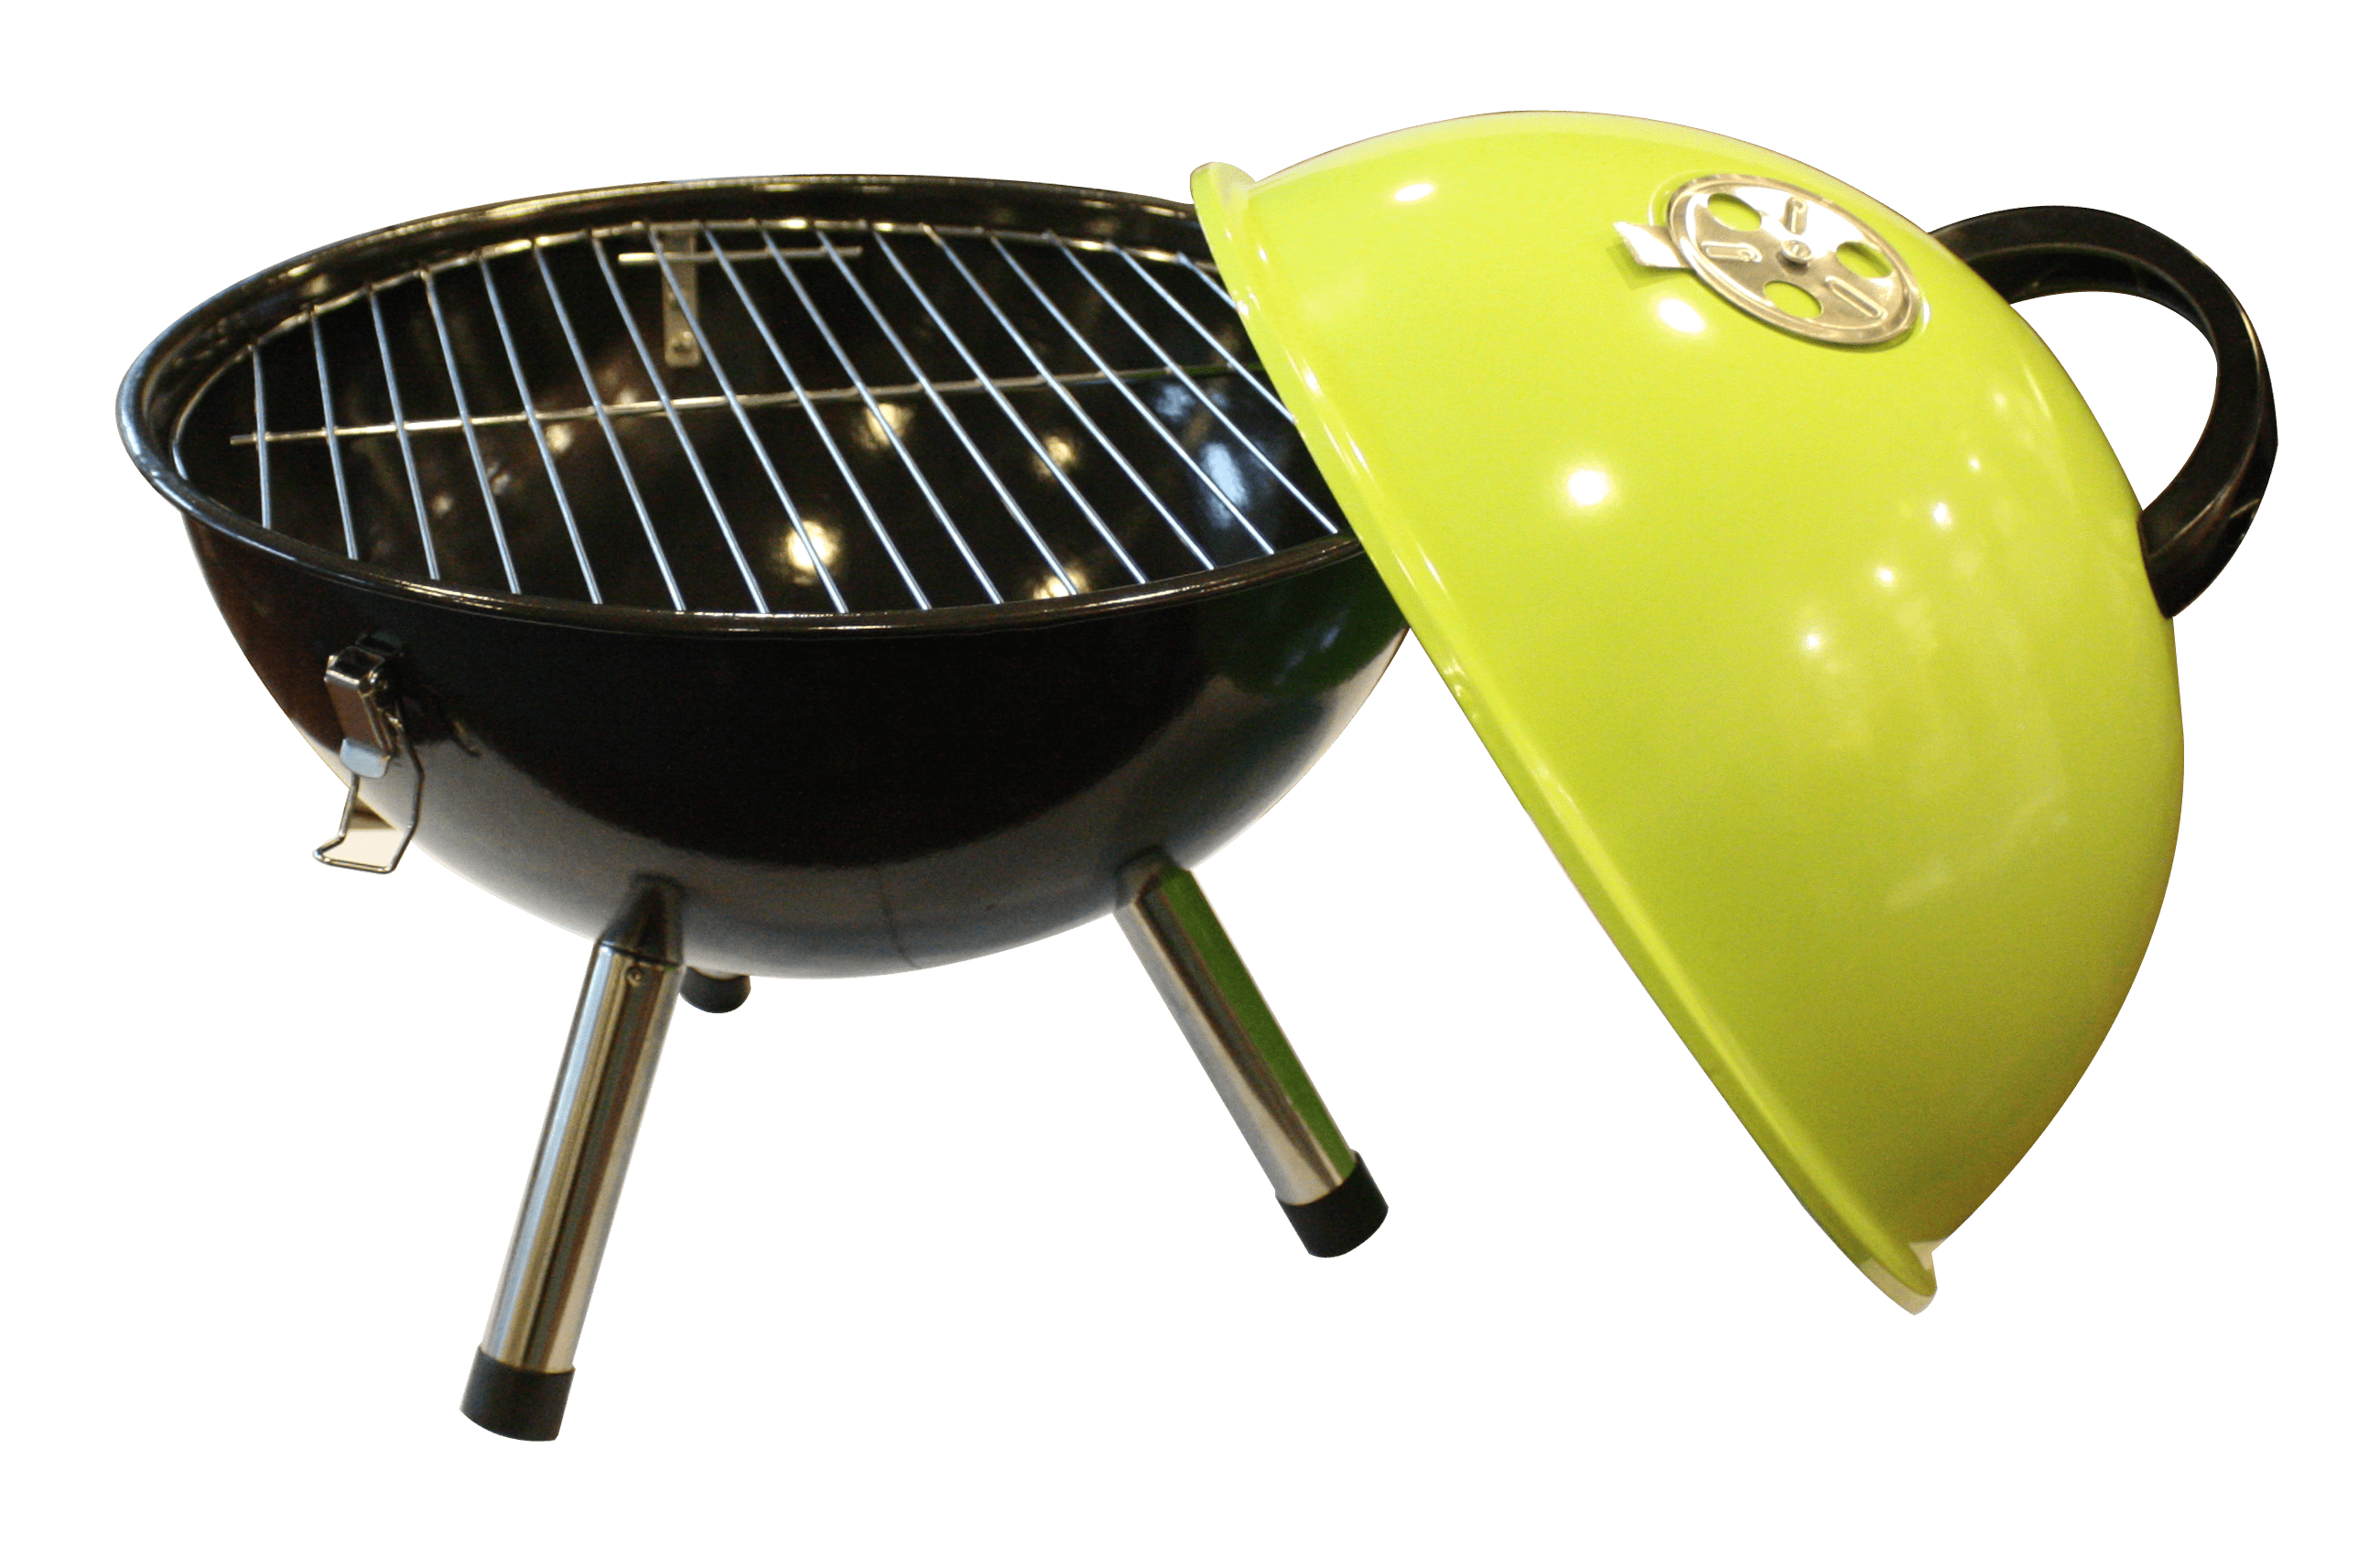 Bbq transparent png images. Grilling clipart weber grill